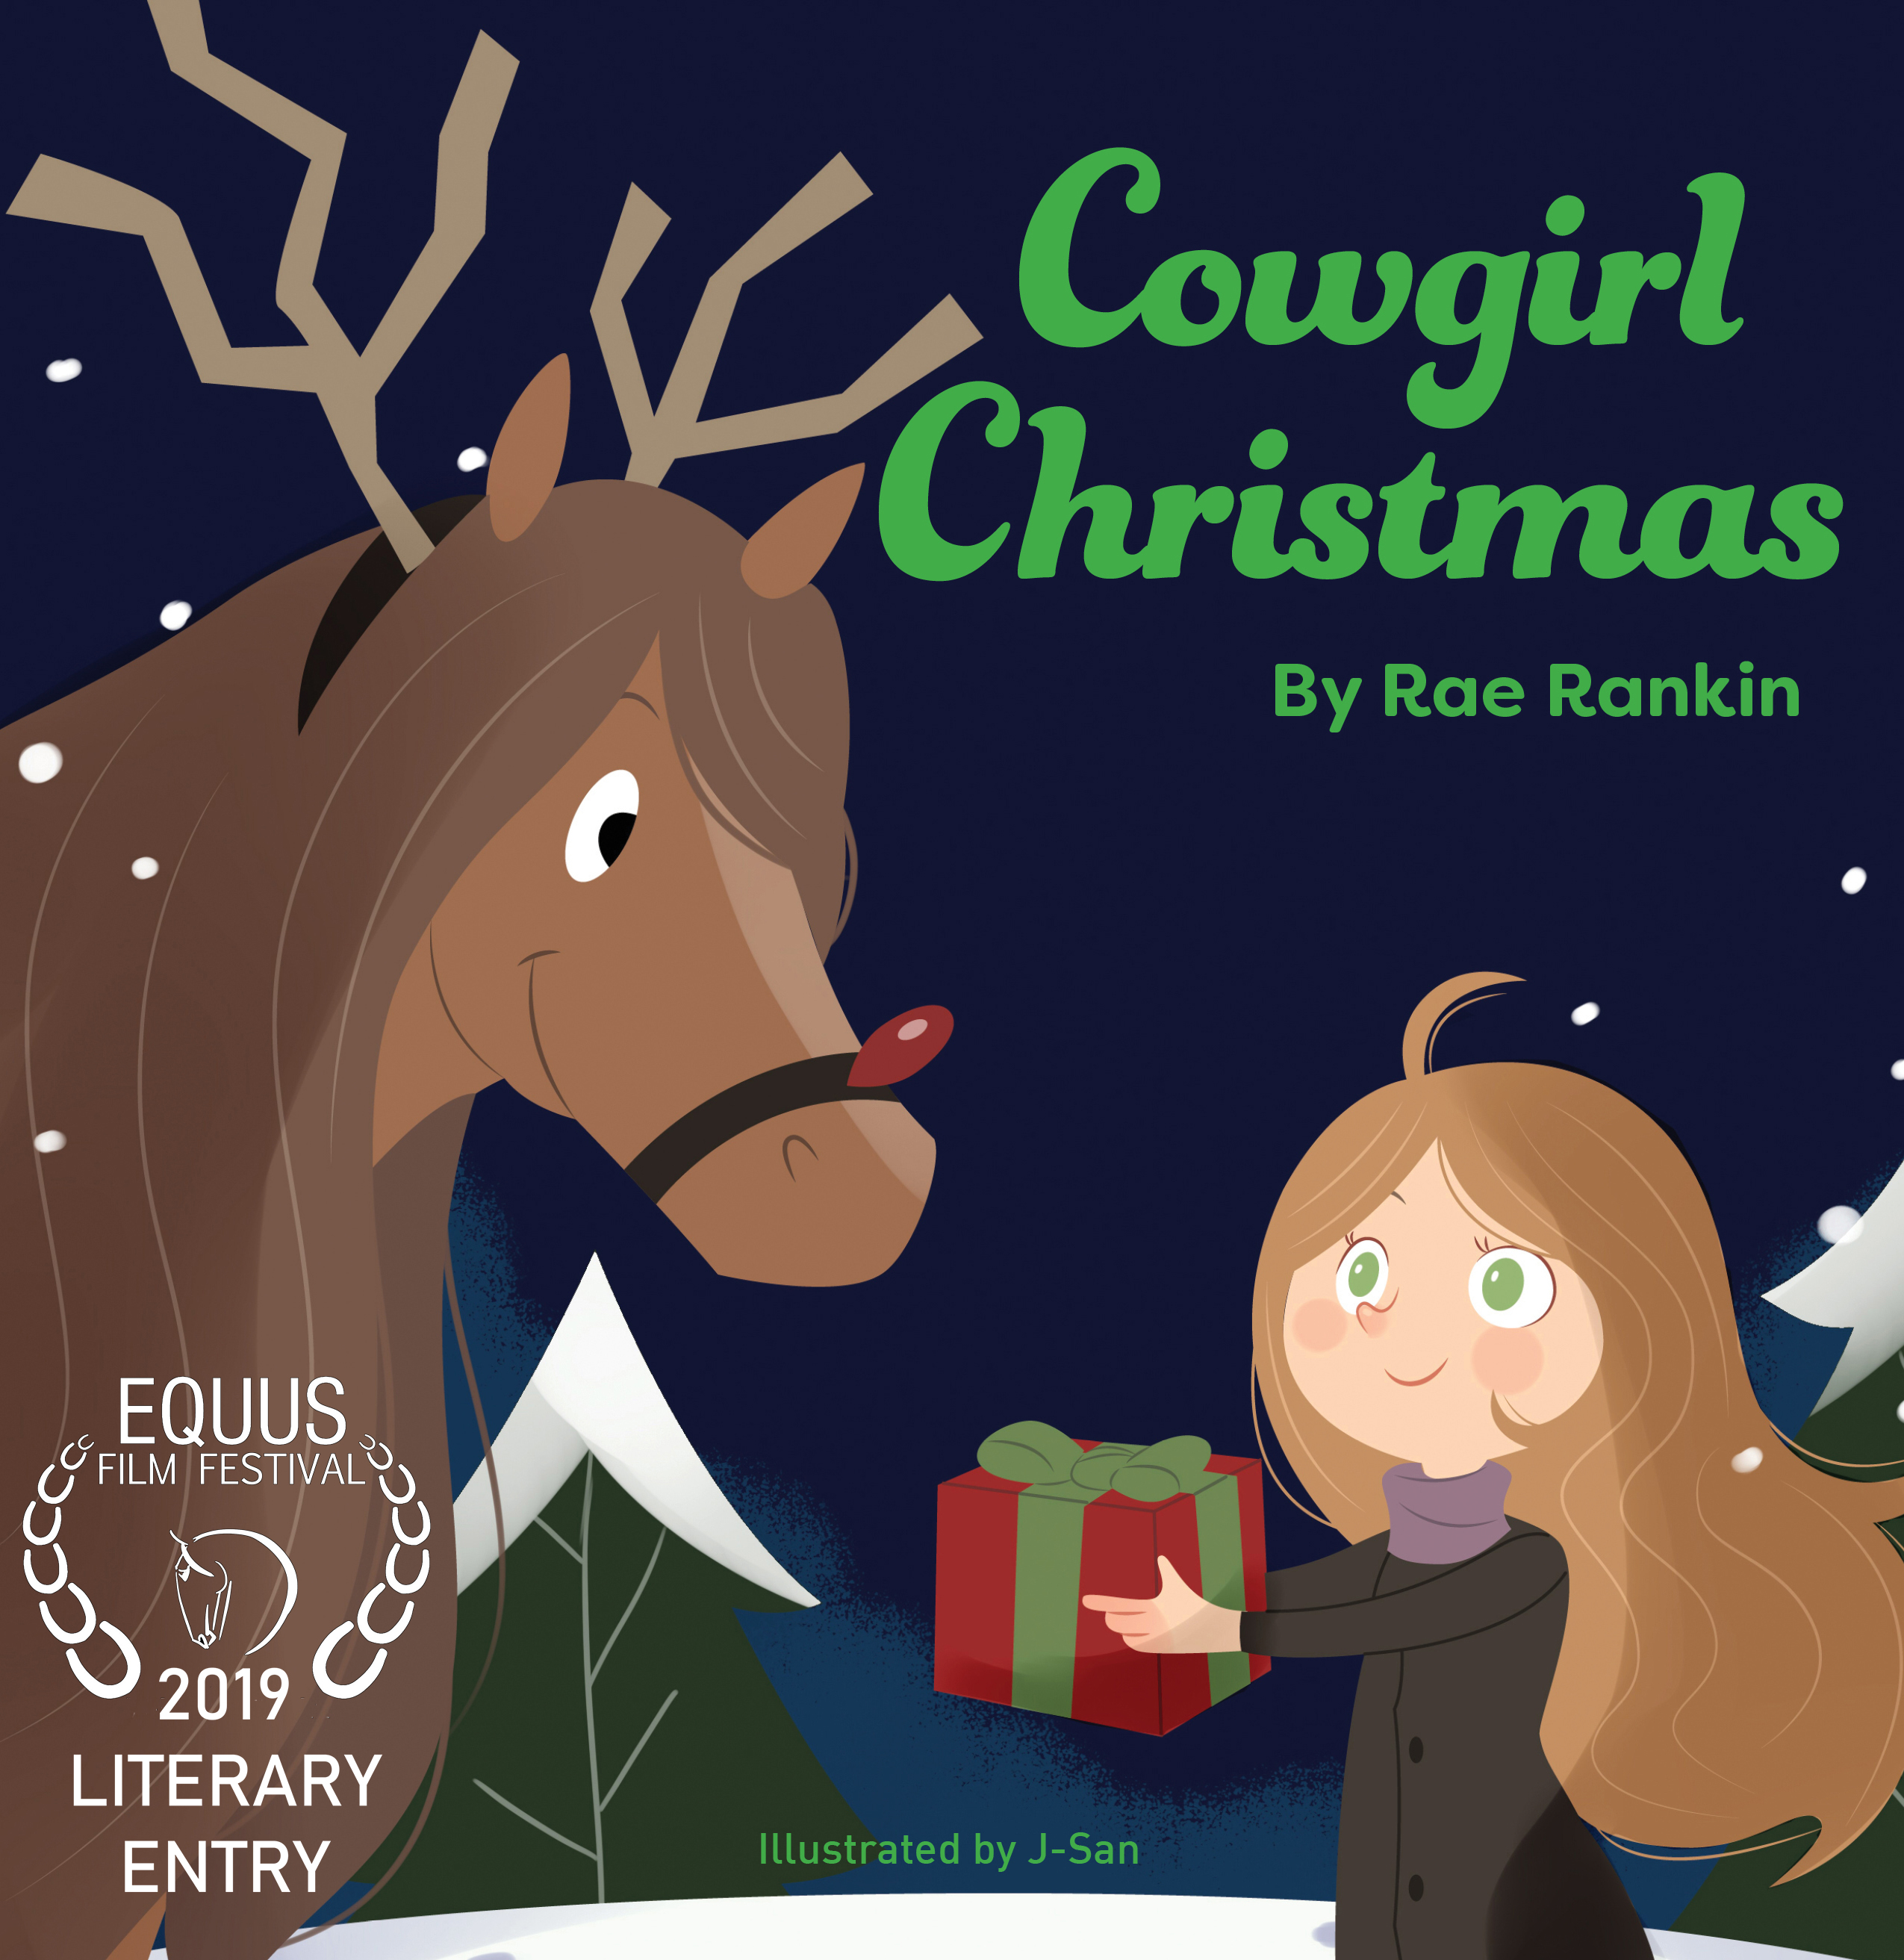 The cover of Cowgirl Christmas. A little girl holding a present and a chestnut horse dressed up as Rudolph the reindeer.